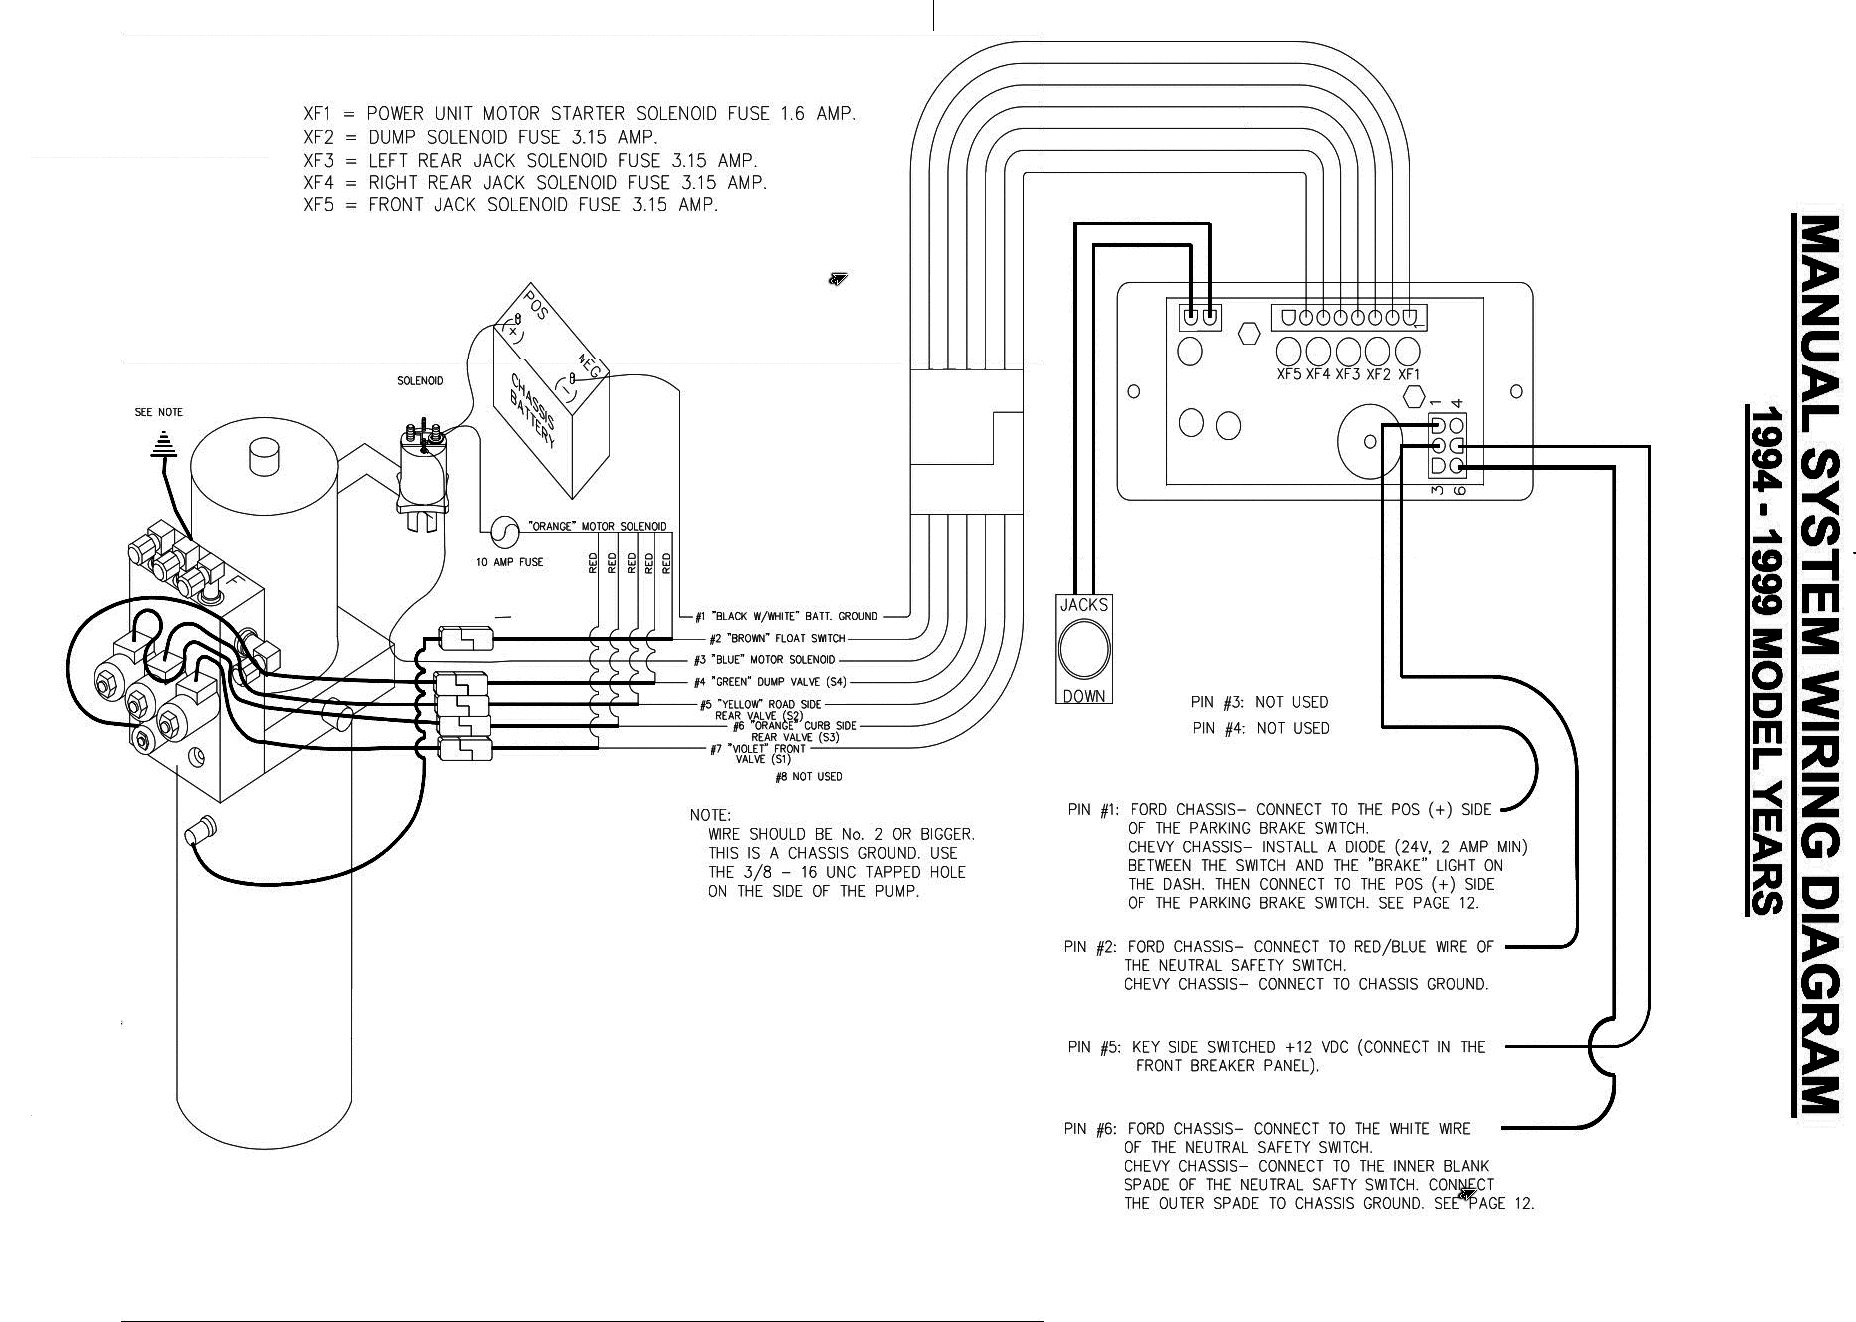 new schematicBW help!!! i have a wiring problem with a power gear control pad on a Typical RV Wiring Diagram at soozxer.org